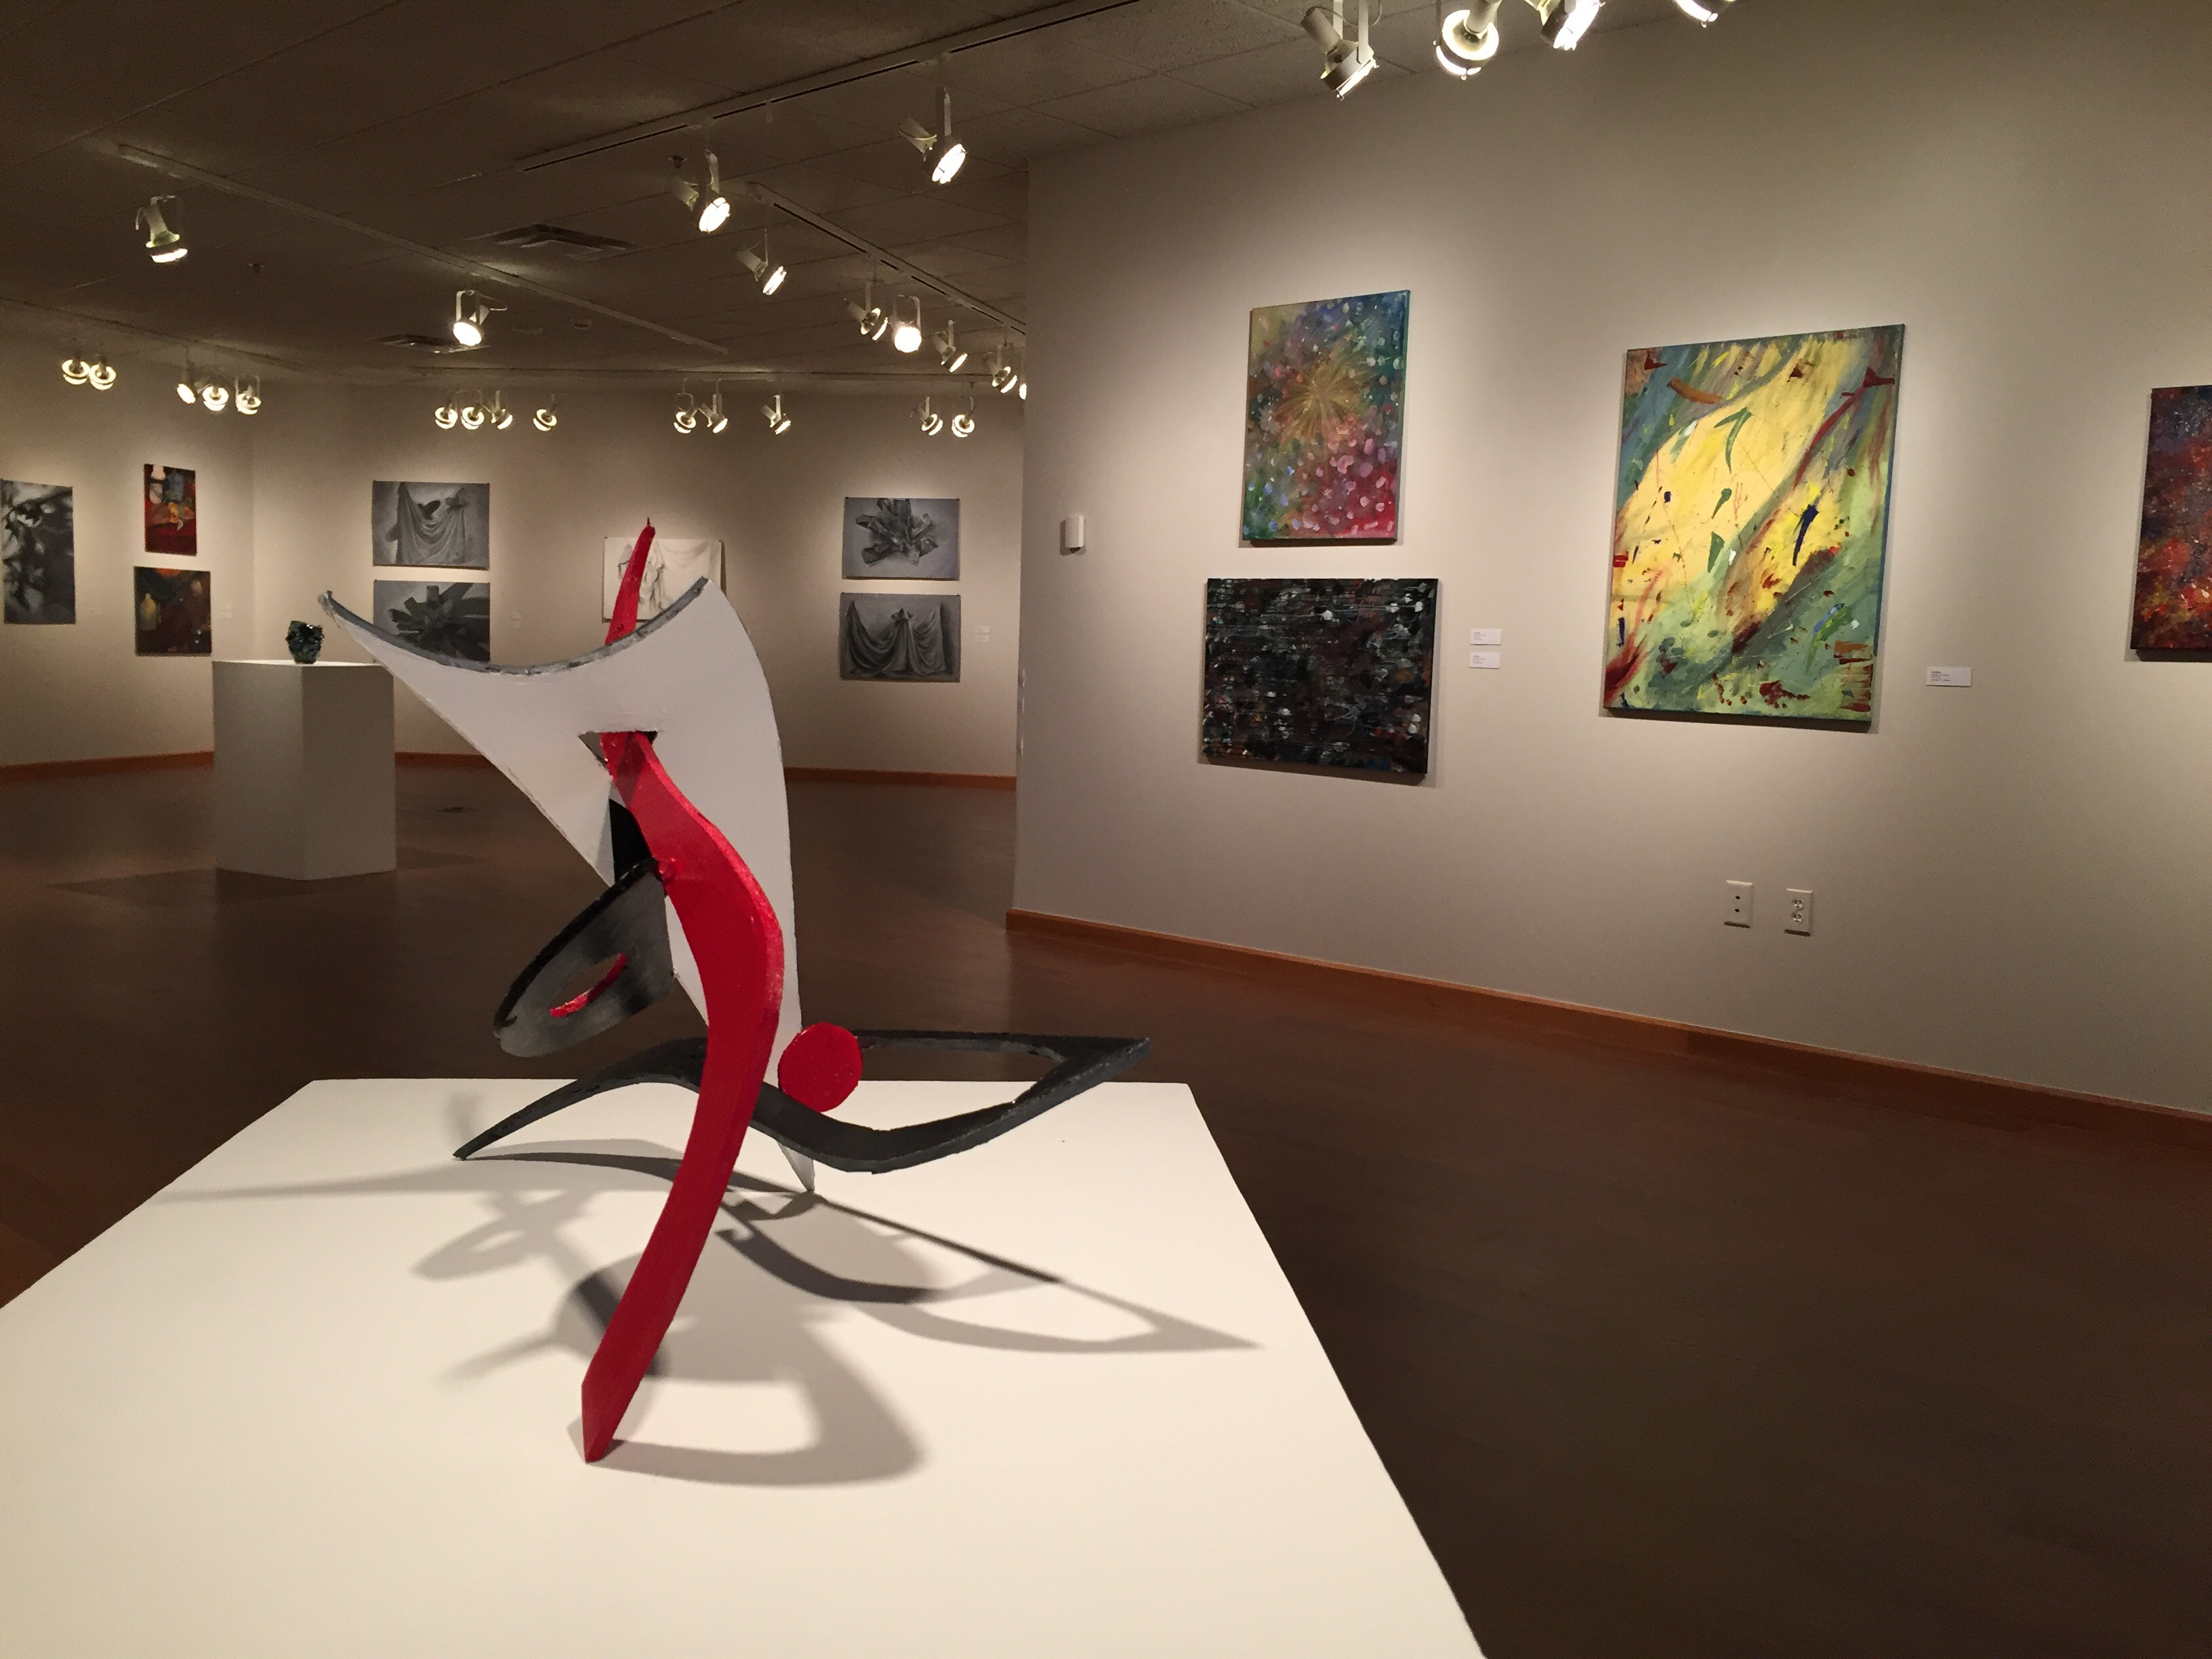 Exhibit showcases graduating students art